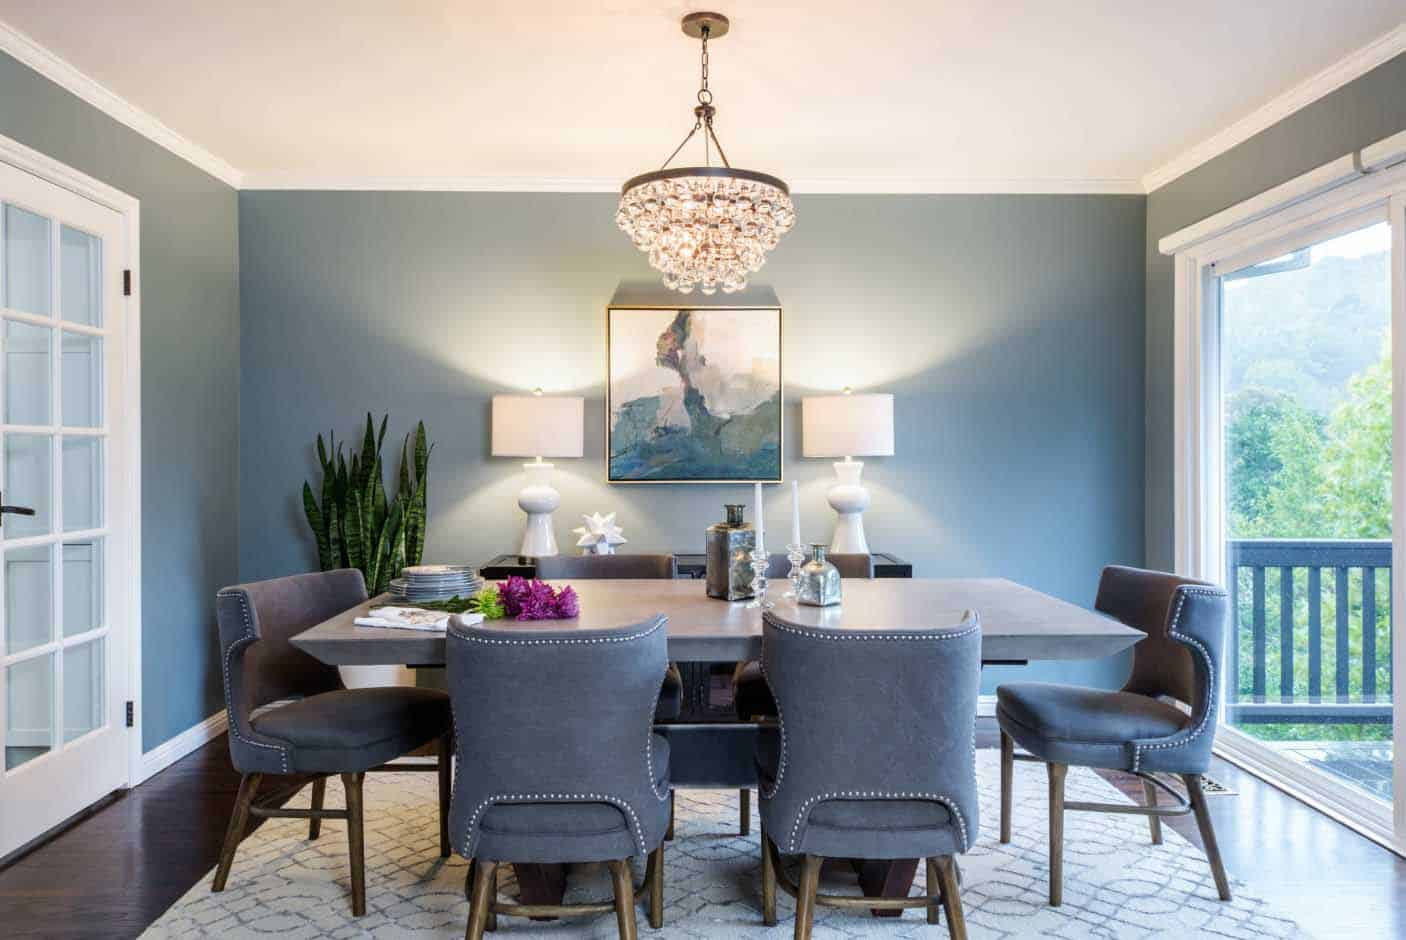 35 transitional dining room ideas for 2019 on dining room inspiration id=93715